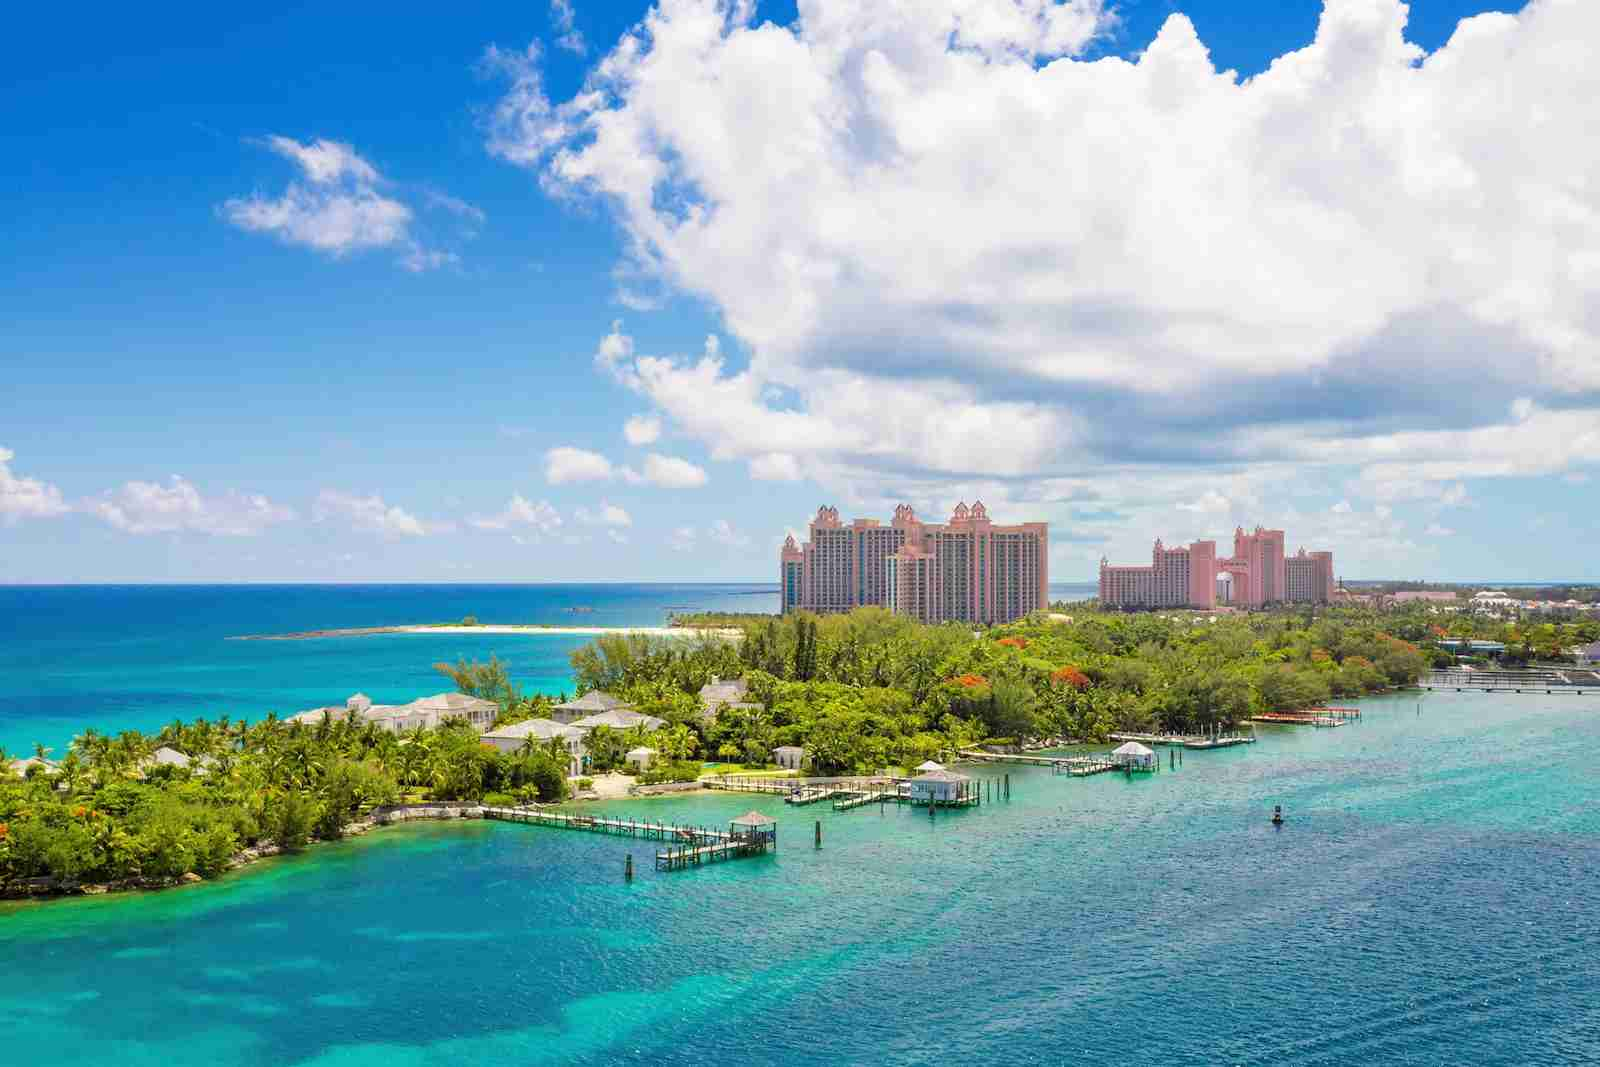 Paradise Island in Nassau in the Bahamas. (Photo by Pola Damonte/Getty Images)